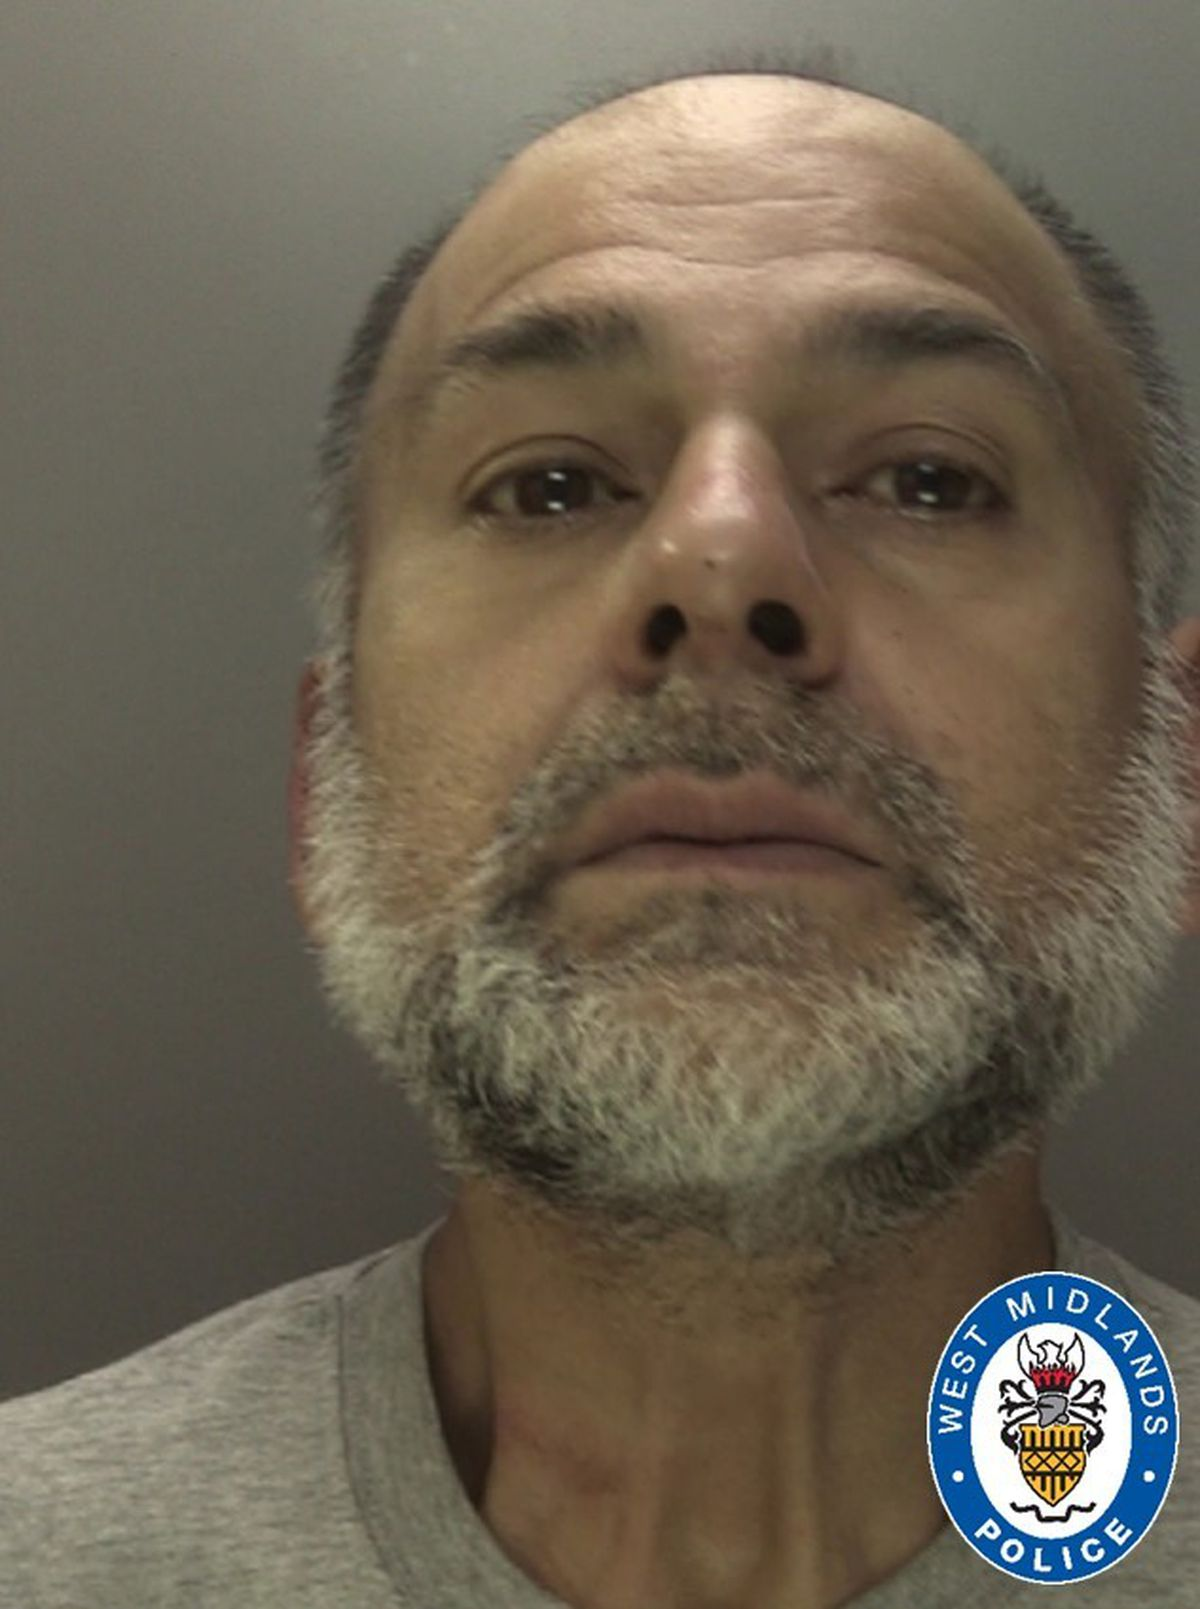 Prolific crook Nawaz has 36 previous offences for burglary, robbery and theft (Image by West Midlands Police)